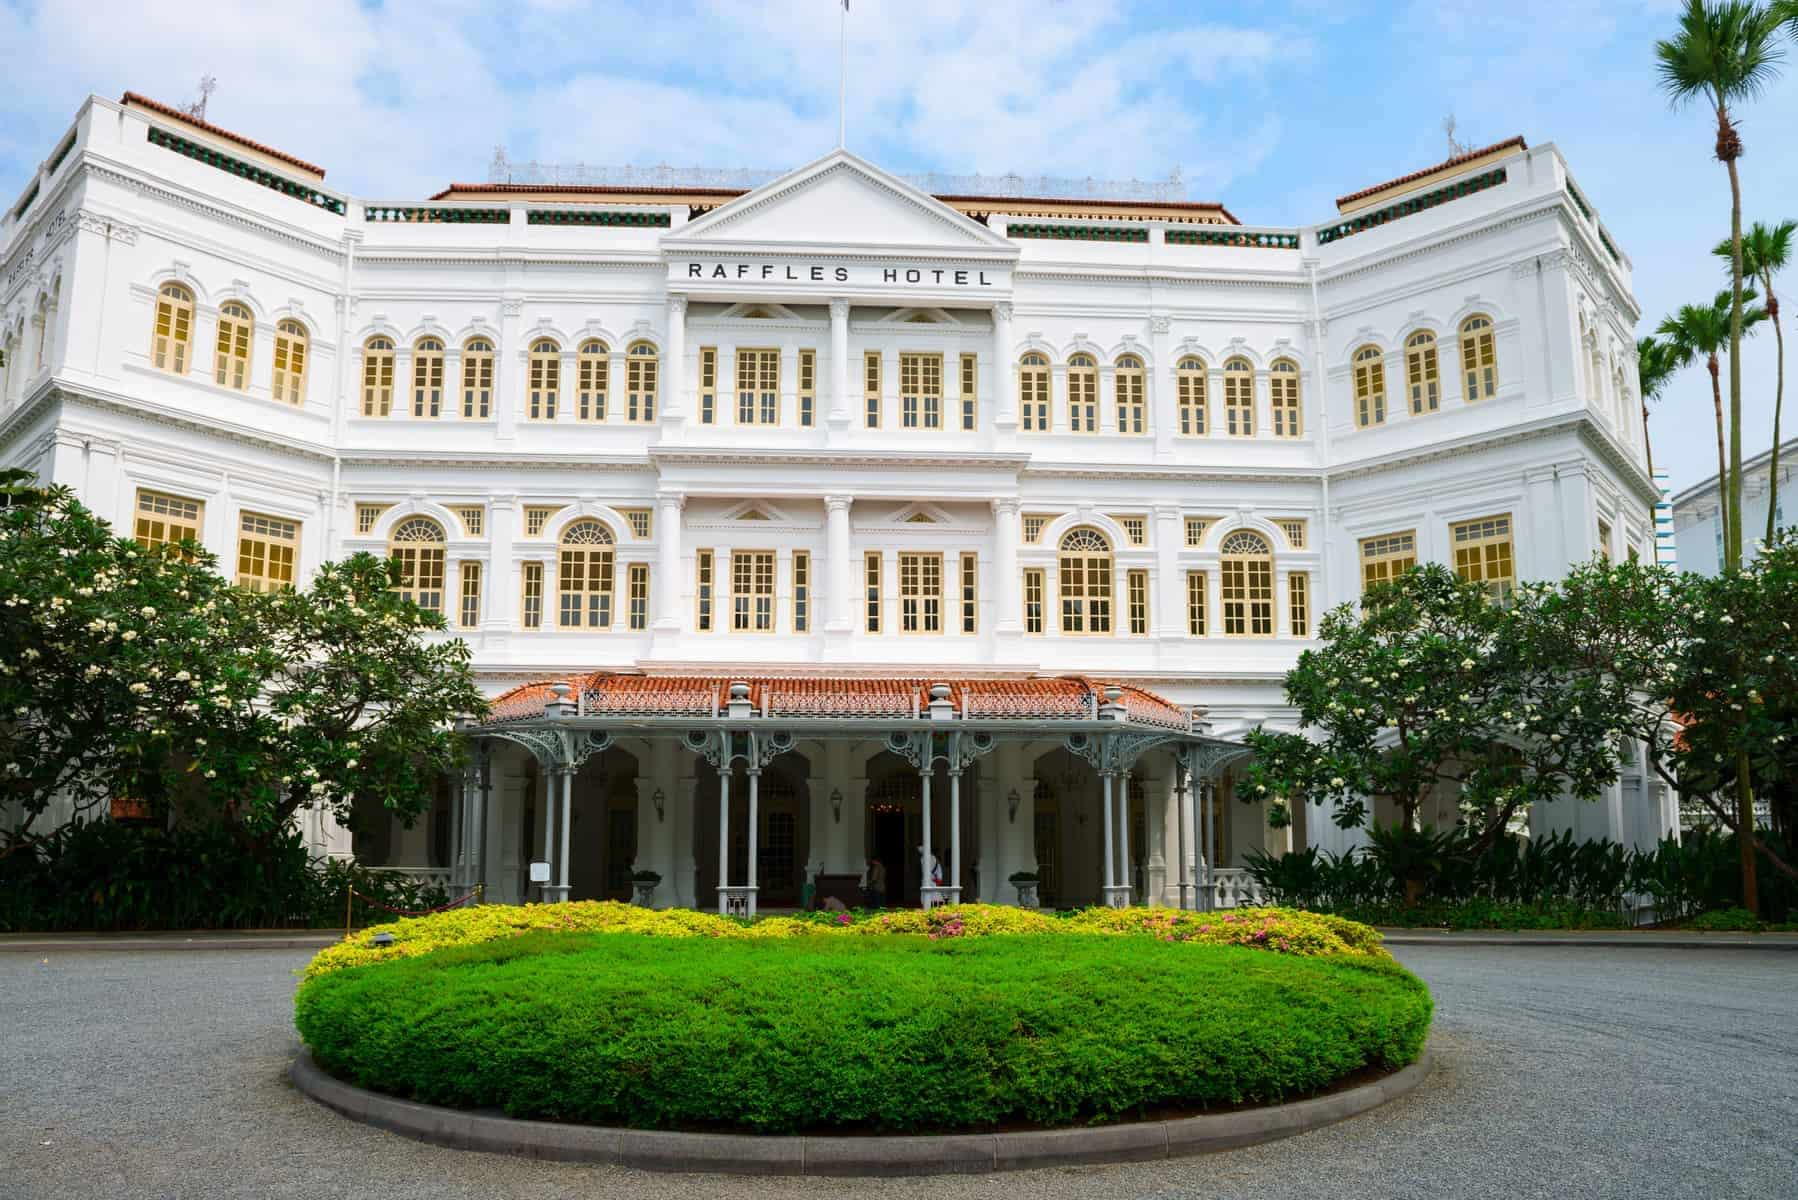 Singapore - September 08, 2012: The Raffles Hotel. Opened in 1899, it was named after Singapore's founder Sir Stamford Raffles.